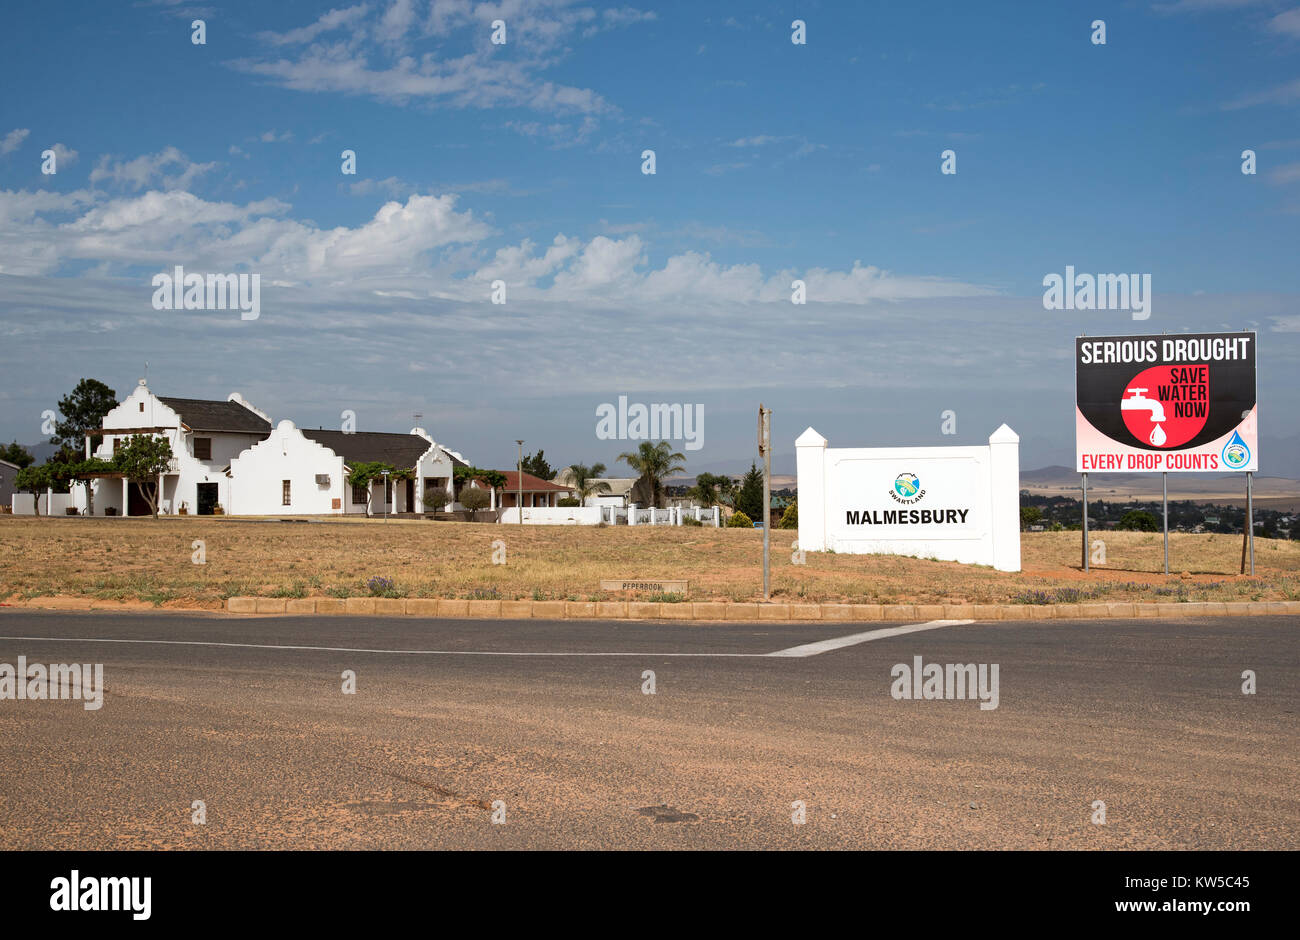 Roadside sign warning of a serious drought situation in Malmesbury a town in the Karoo region of South Africa. December - Stock Image